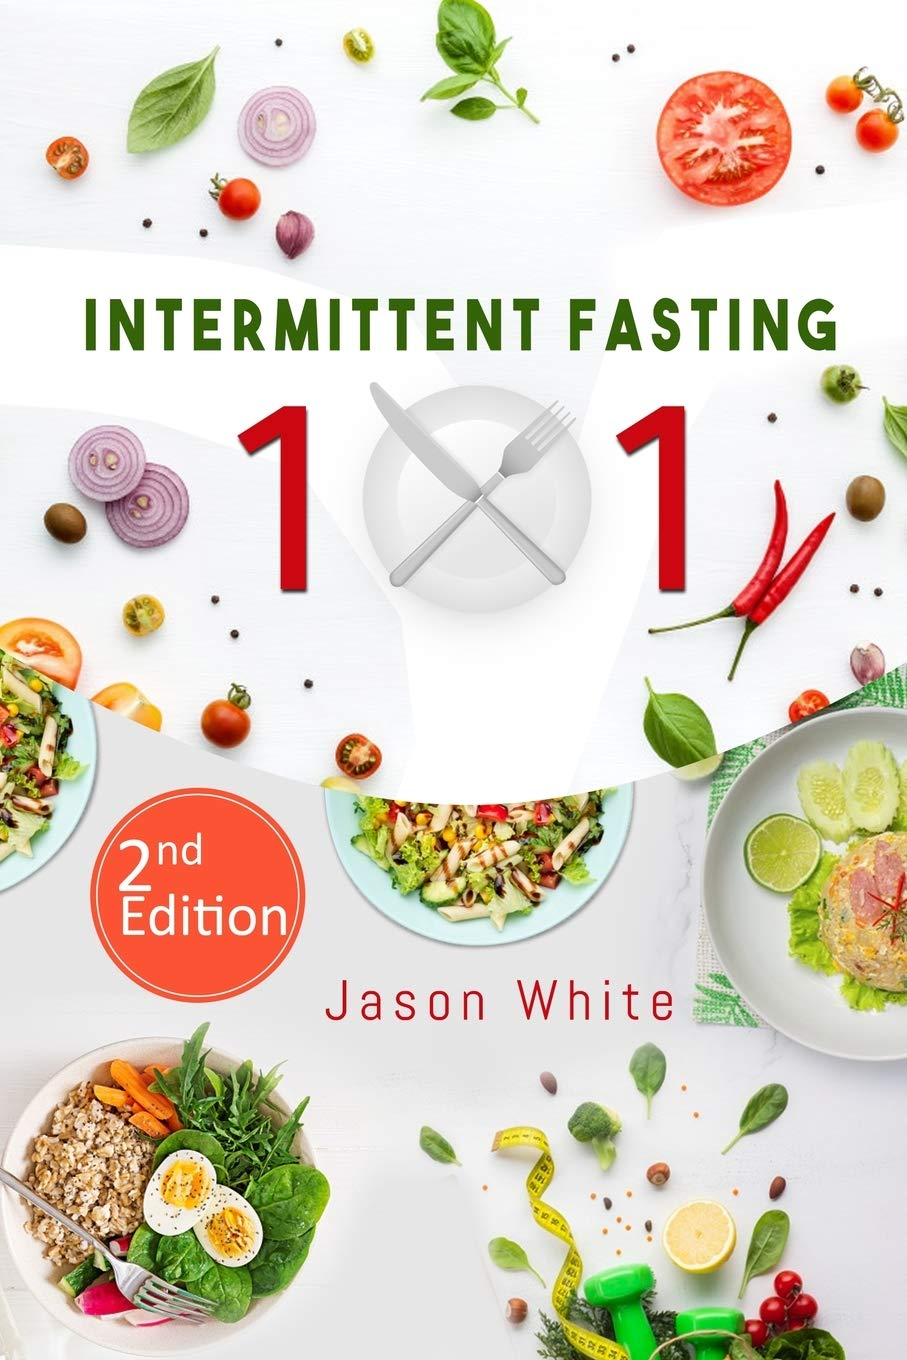 Intermittent fasting 101 2nd edition 1